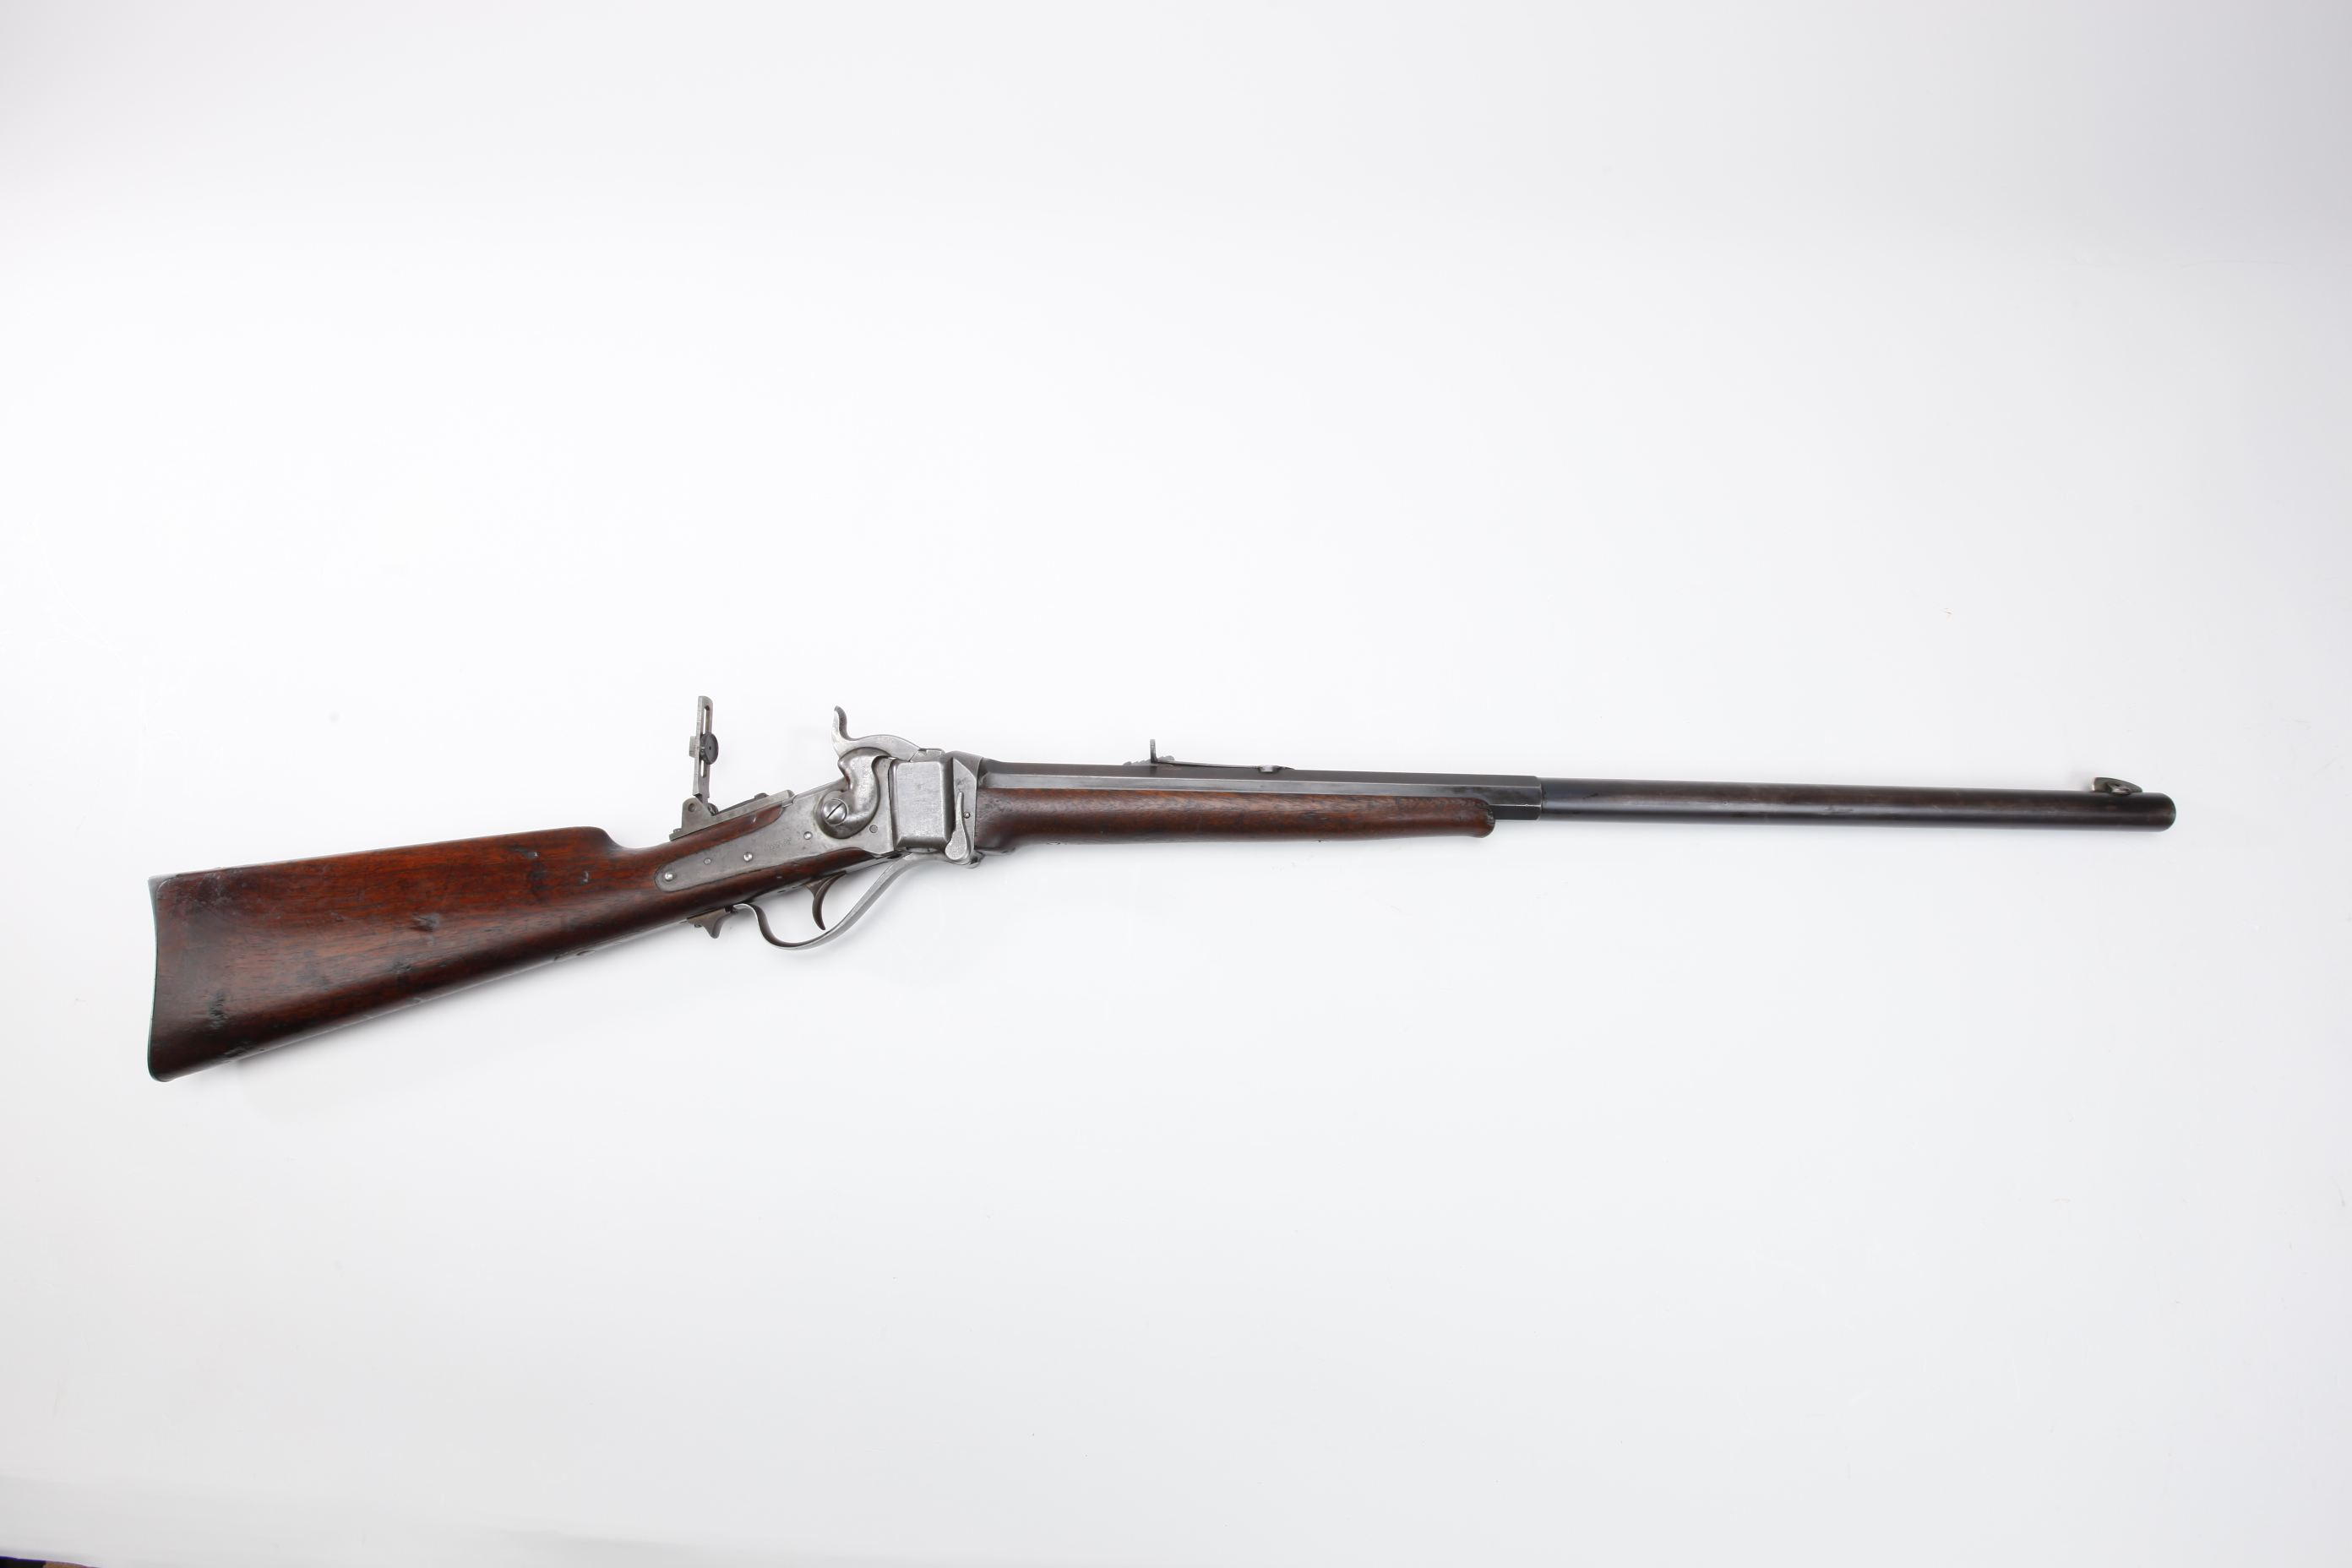 Sharps Model 1874 Old Reliable Single Shot Falling Block Rifle (2)